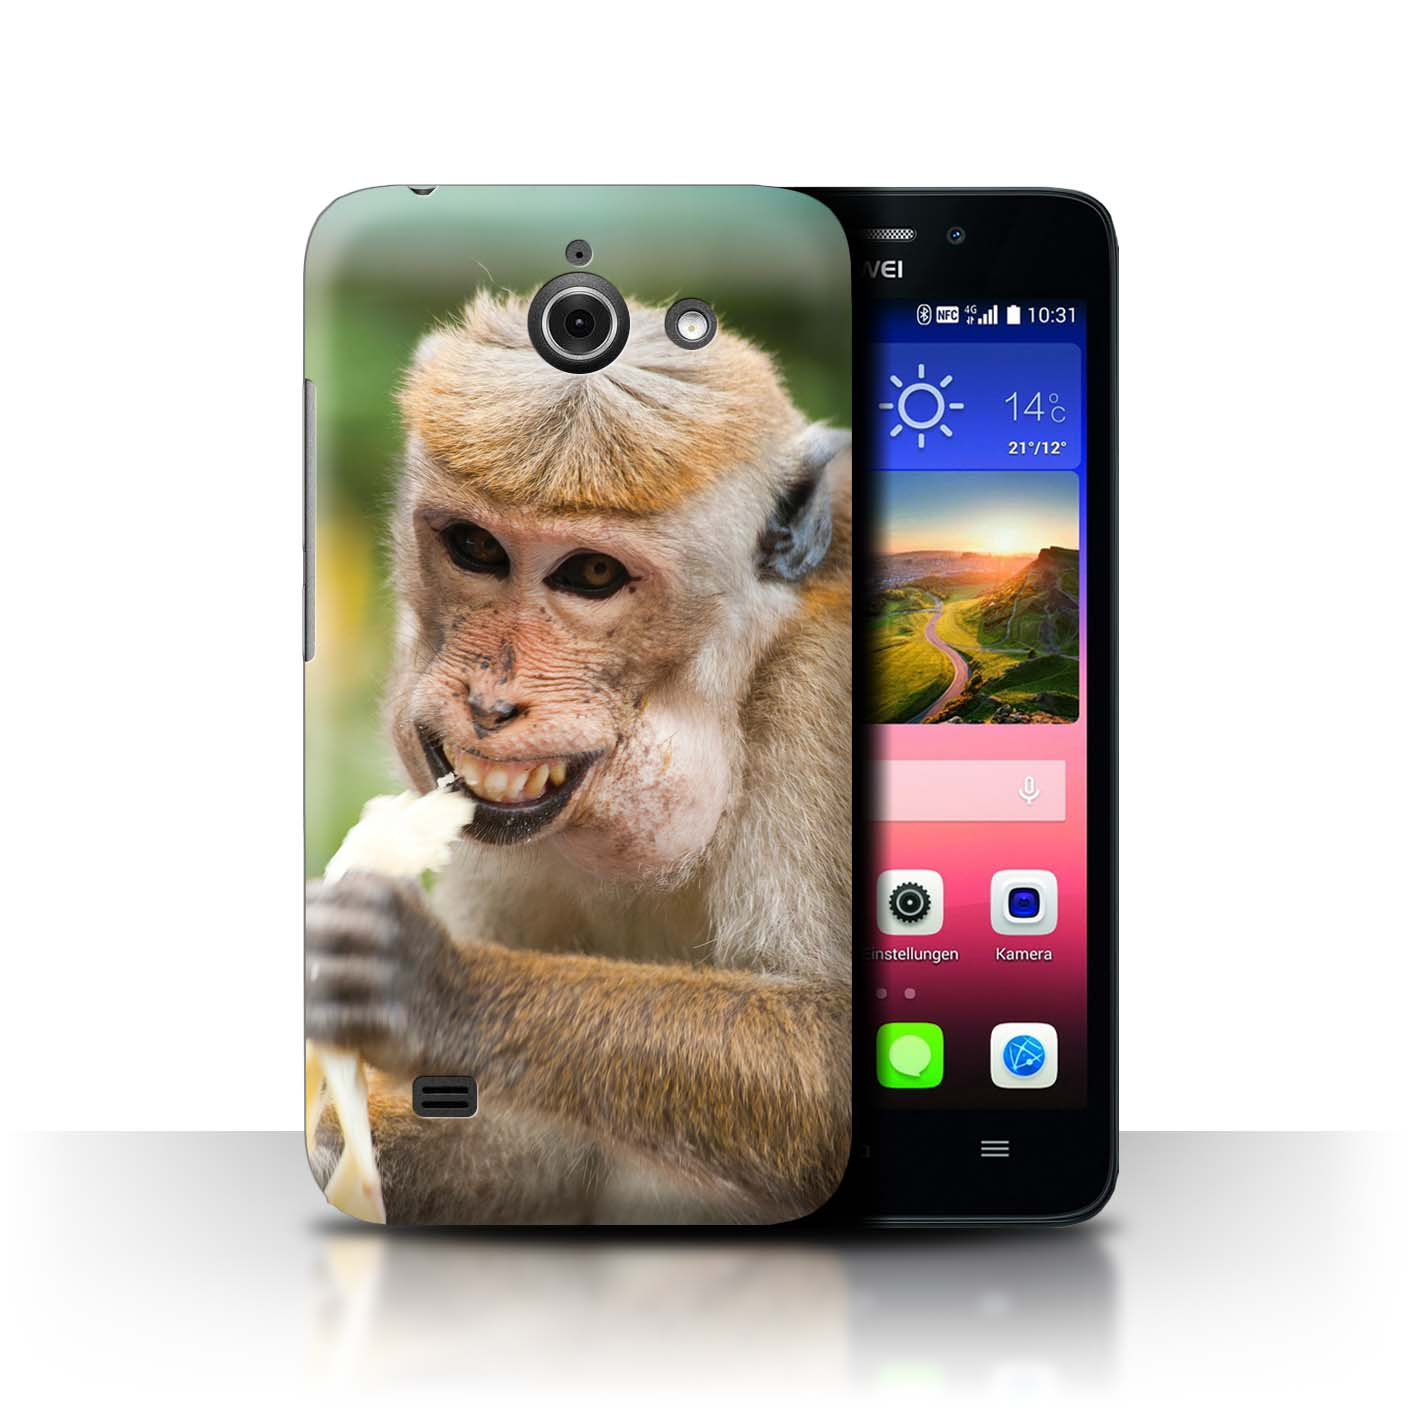 Stuff4-Huelle-Case-Backcover-fuer-Huawei-Ascend-Y550-LTE-Lustiges-Tier-Meme